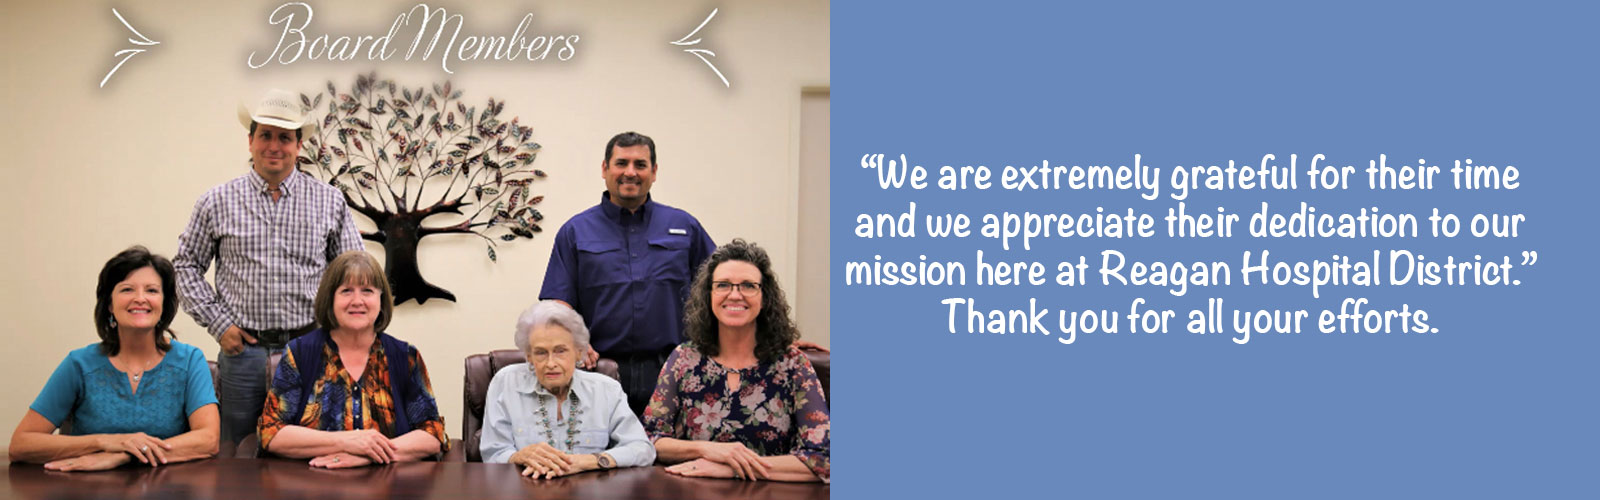 """""""We are extremely grateful for their time and we appreciate their dedication to our mission here at Reagan Hospital District."""" Thank you for all your efforts."""